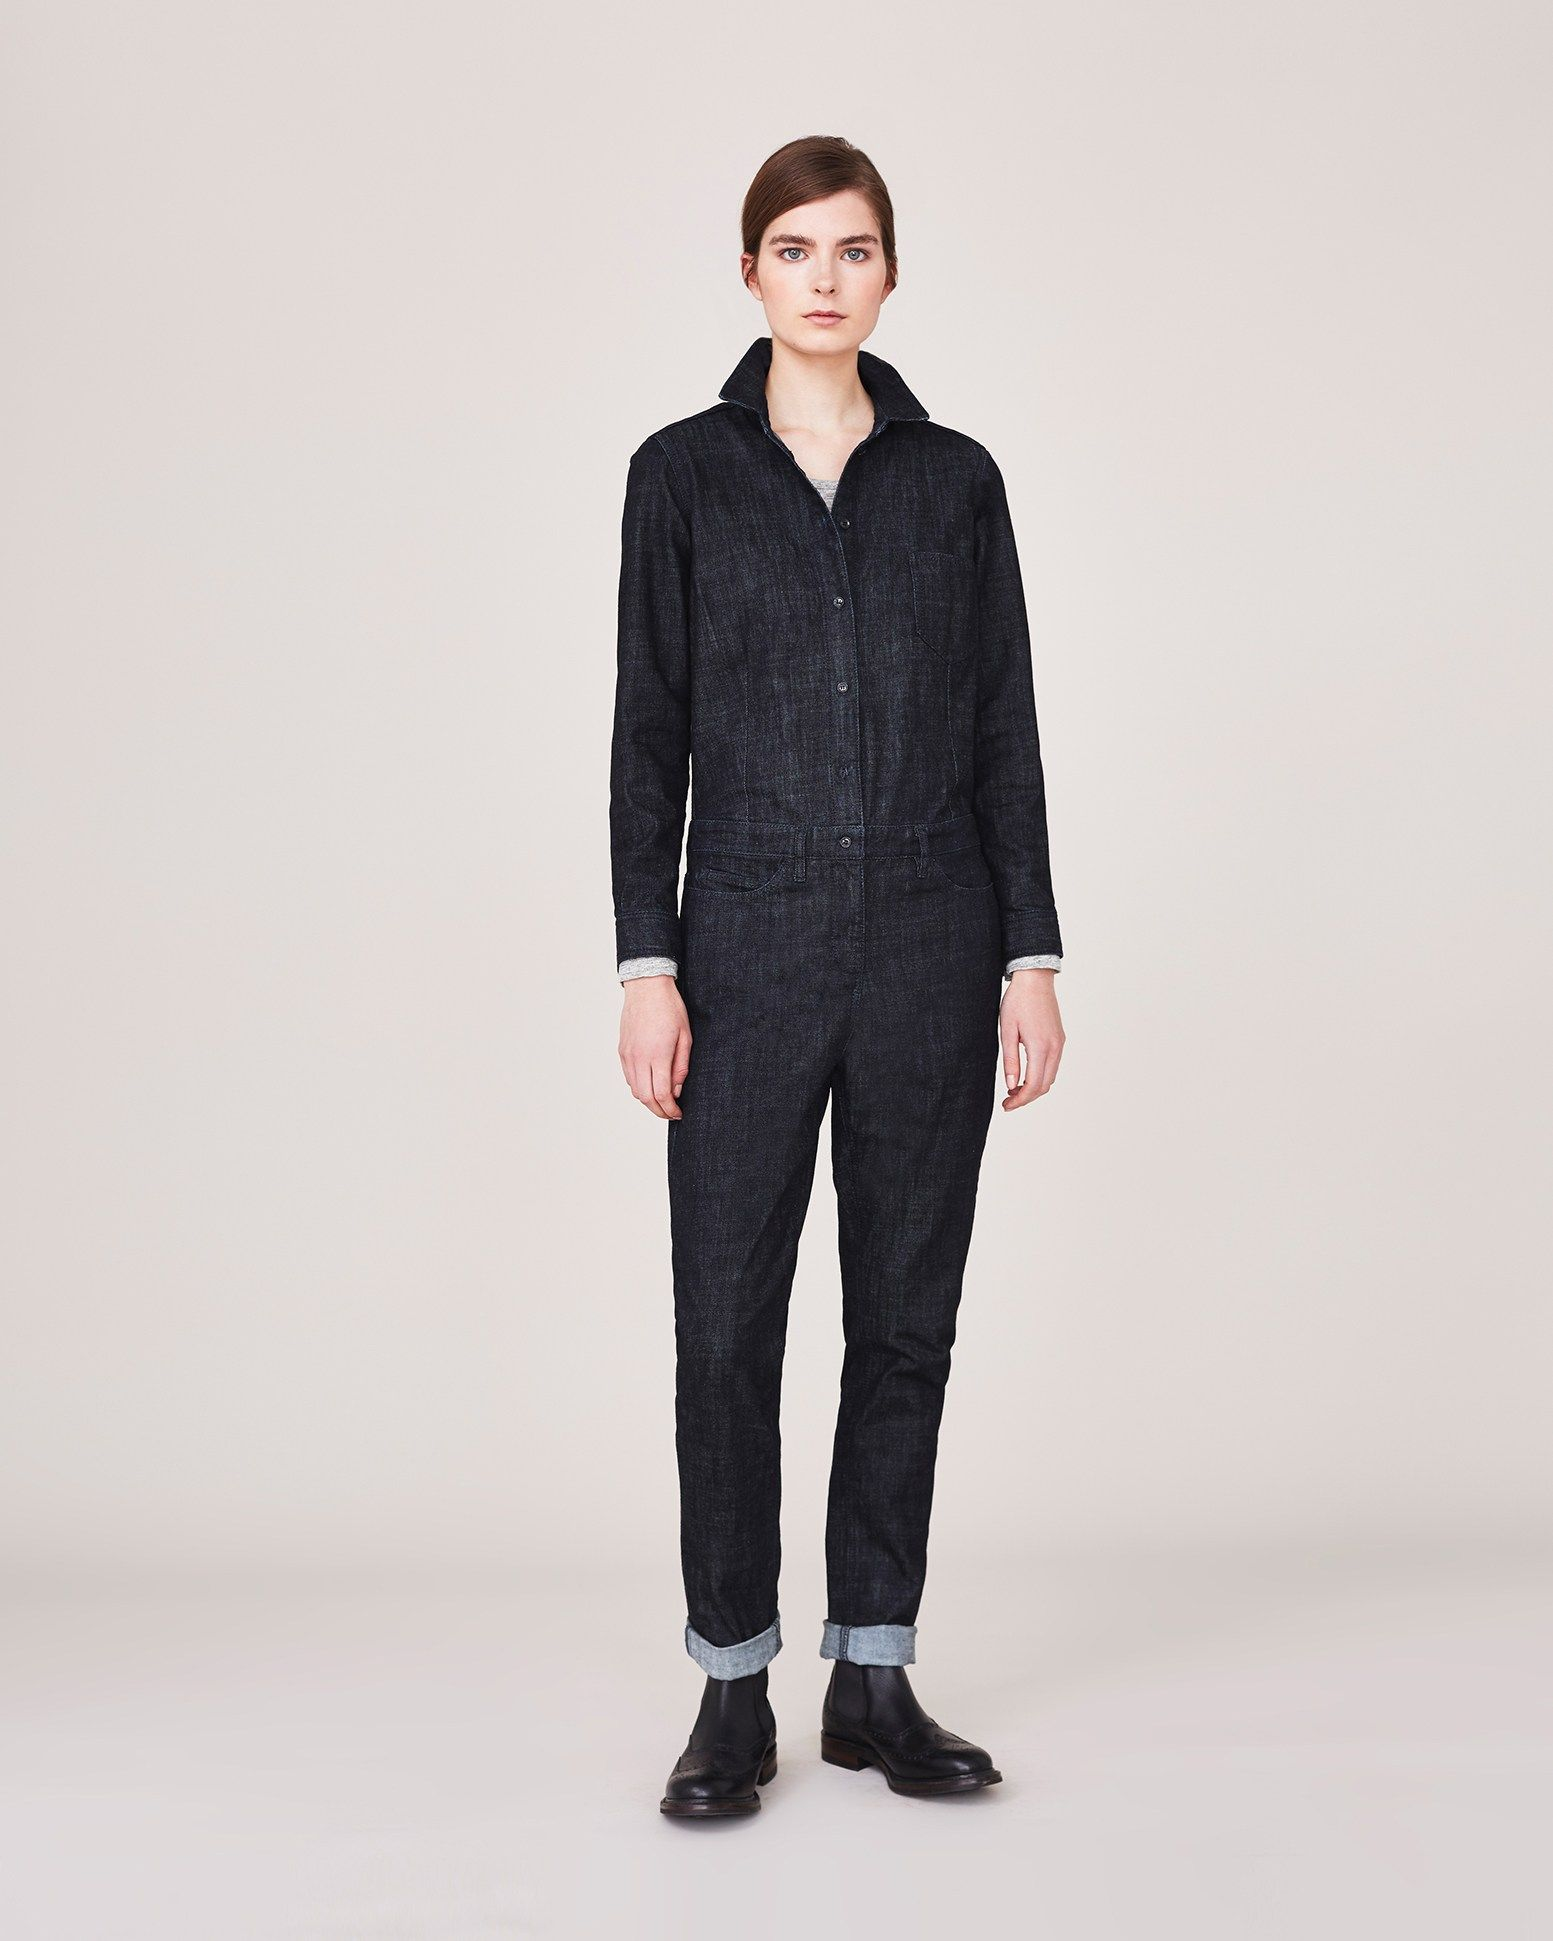 Awesome Jumpsuits and Dungarees for 2019 12